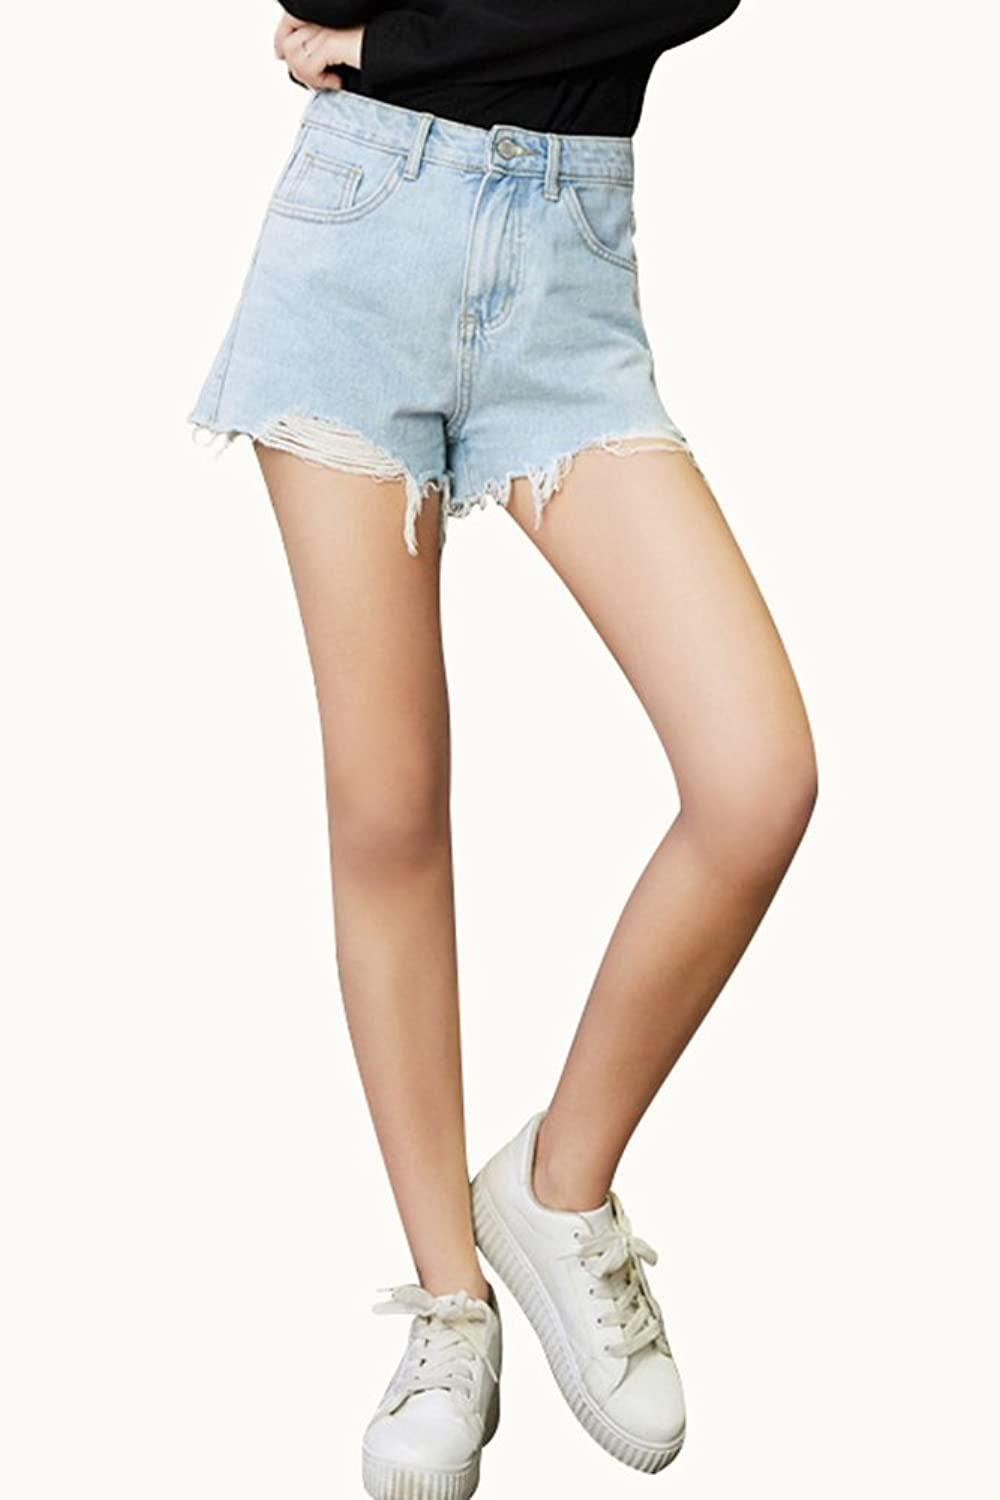 ASide BSide Womens Raw Hem Jean Shorts Ripped Hole Casual Fit Denim Stretchy Hot